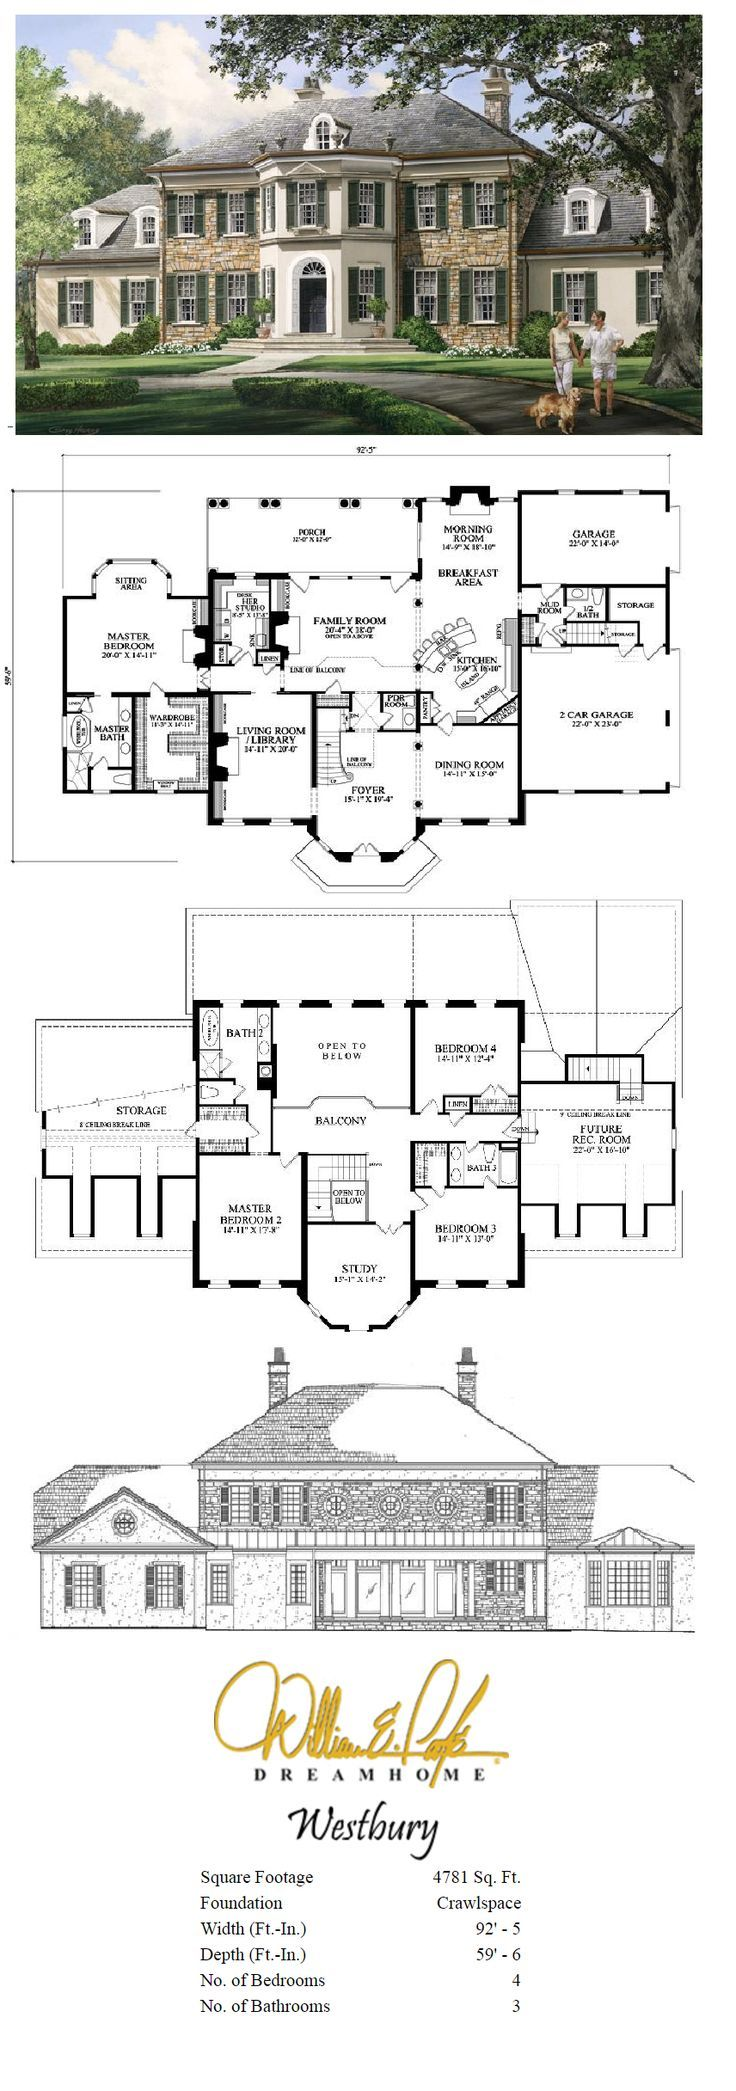 Westbury Perspective with Plans